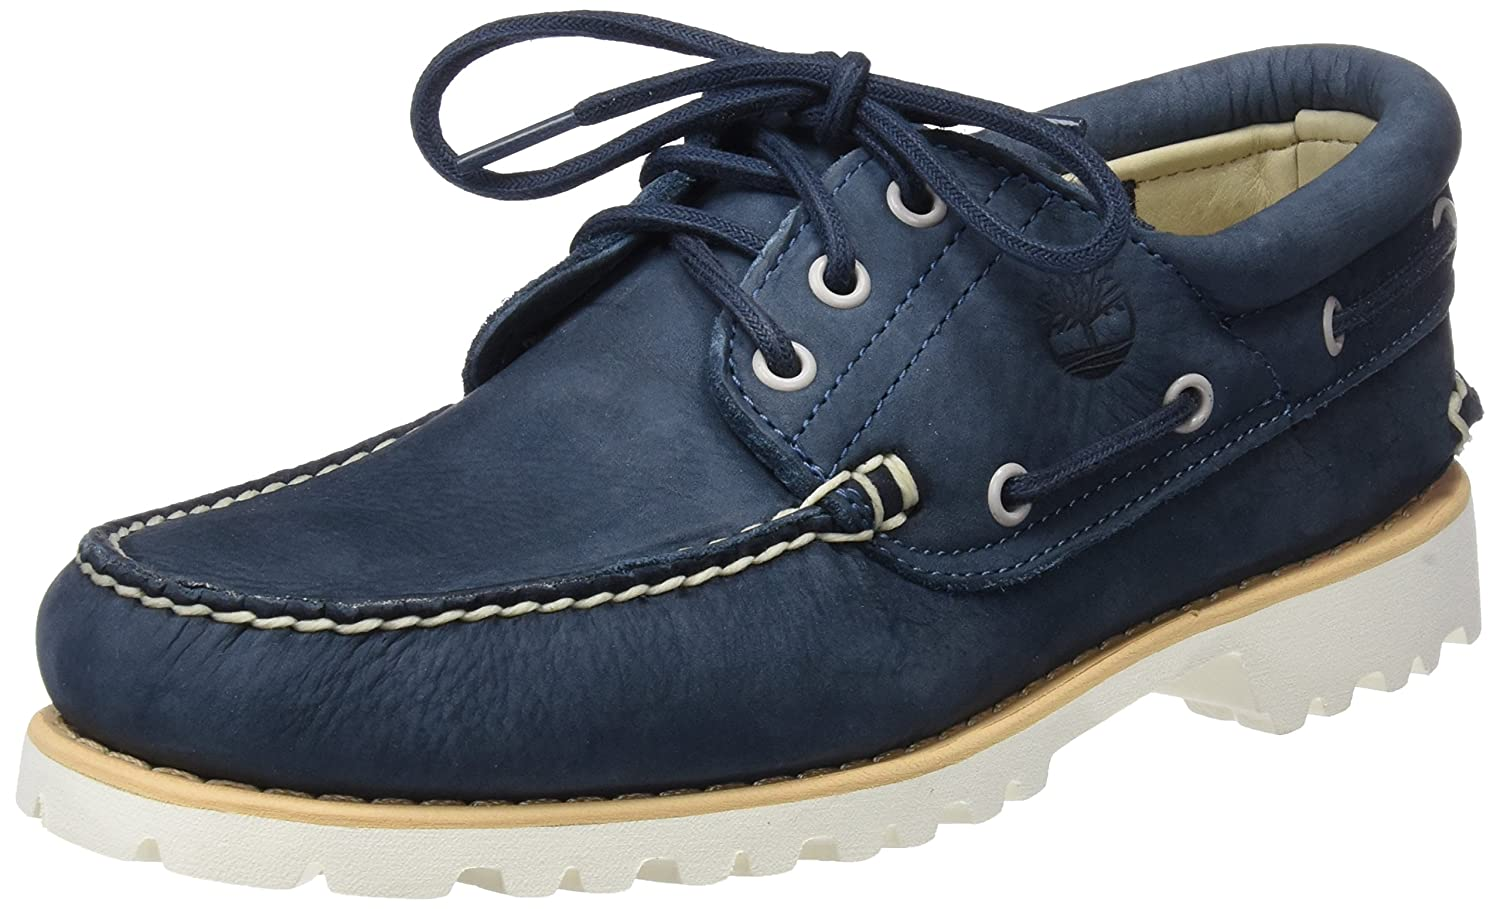 dfa006f9e48 Timberland Men's Chilmark 3 Eye Hands Leather Boat Shoes, Blue, 11.5 ...